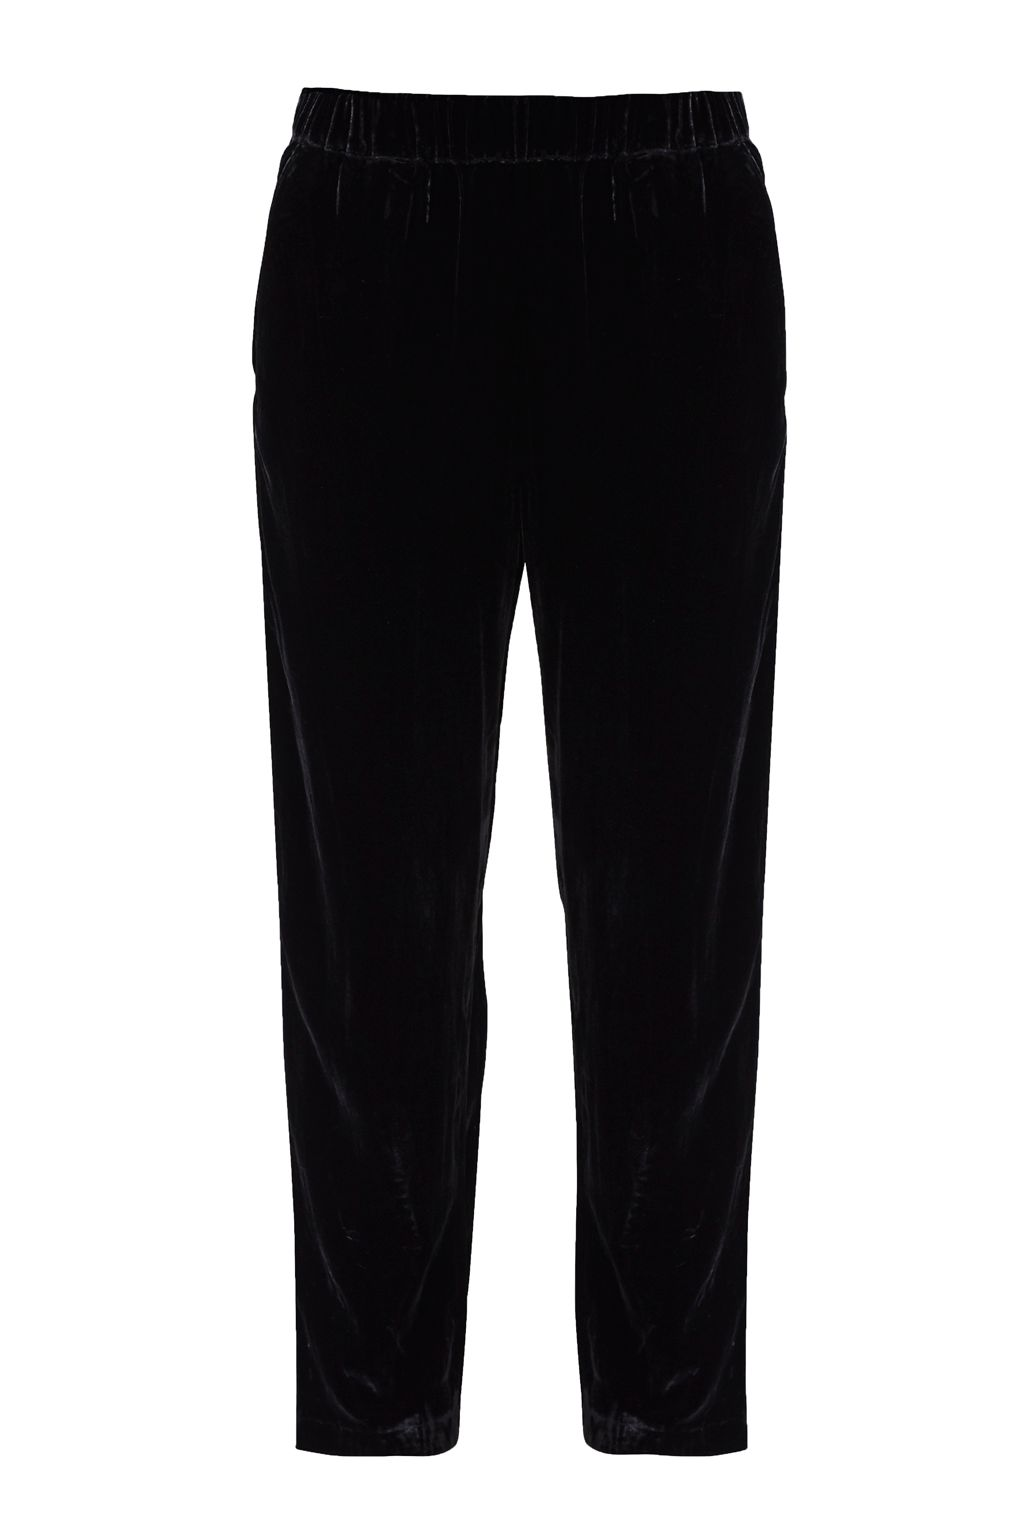 Great Plains Velvet Moon Jogger Trousers, Black